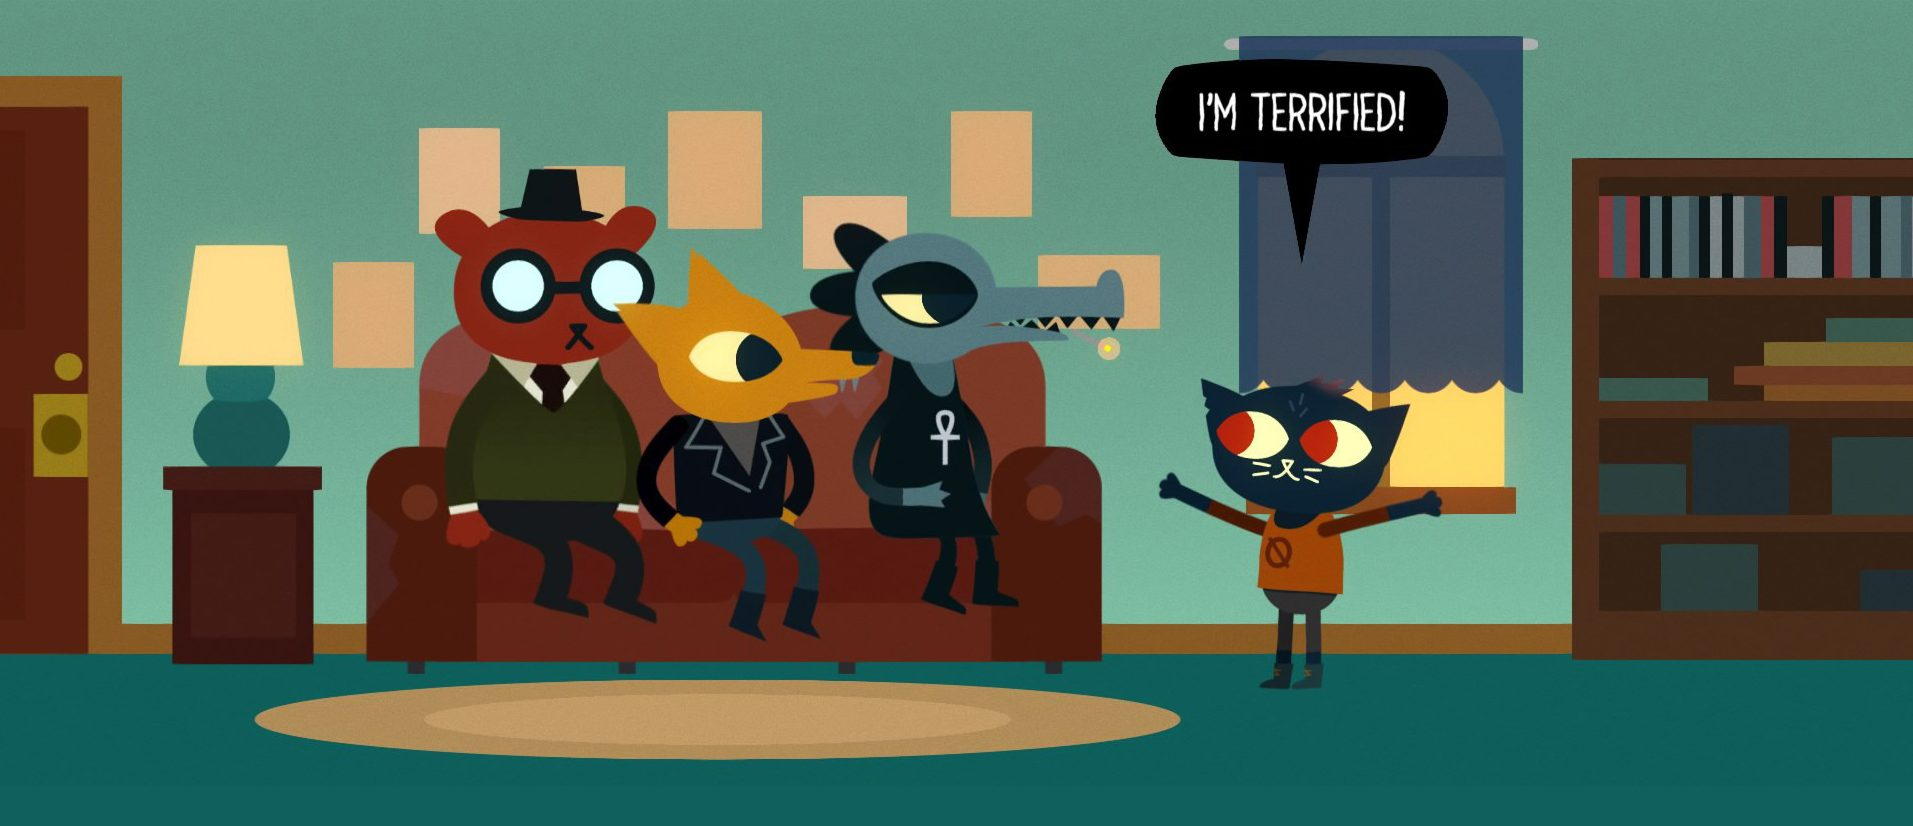 Screenshot dari gameplay NITW (sumber: https://thesnapper.millersville.edu/index.php/2017/04/12/a-closer-look-at-night-in-the-woods/)